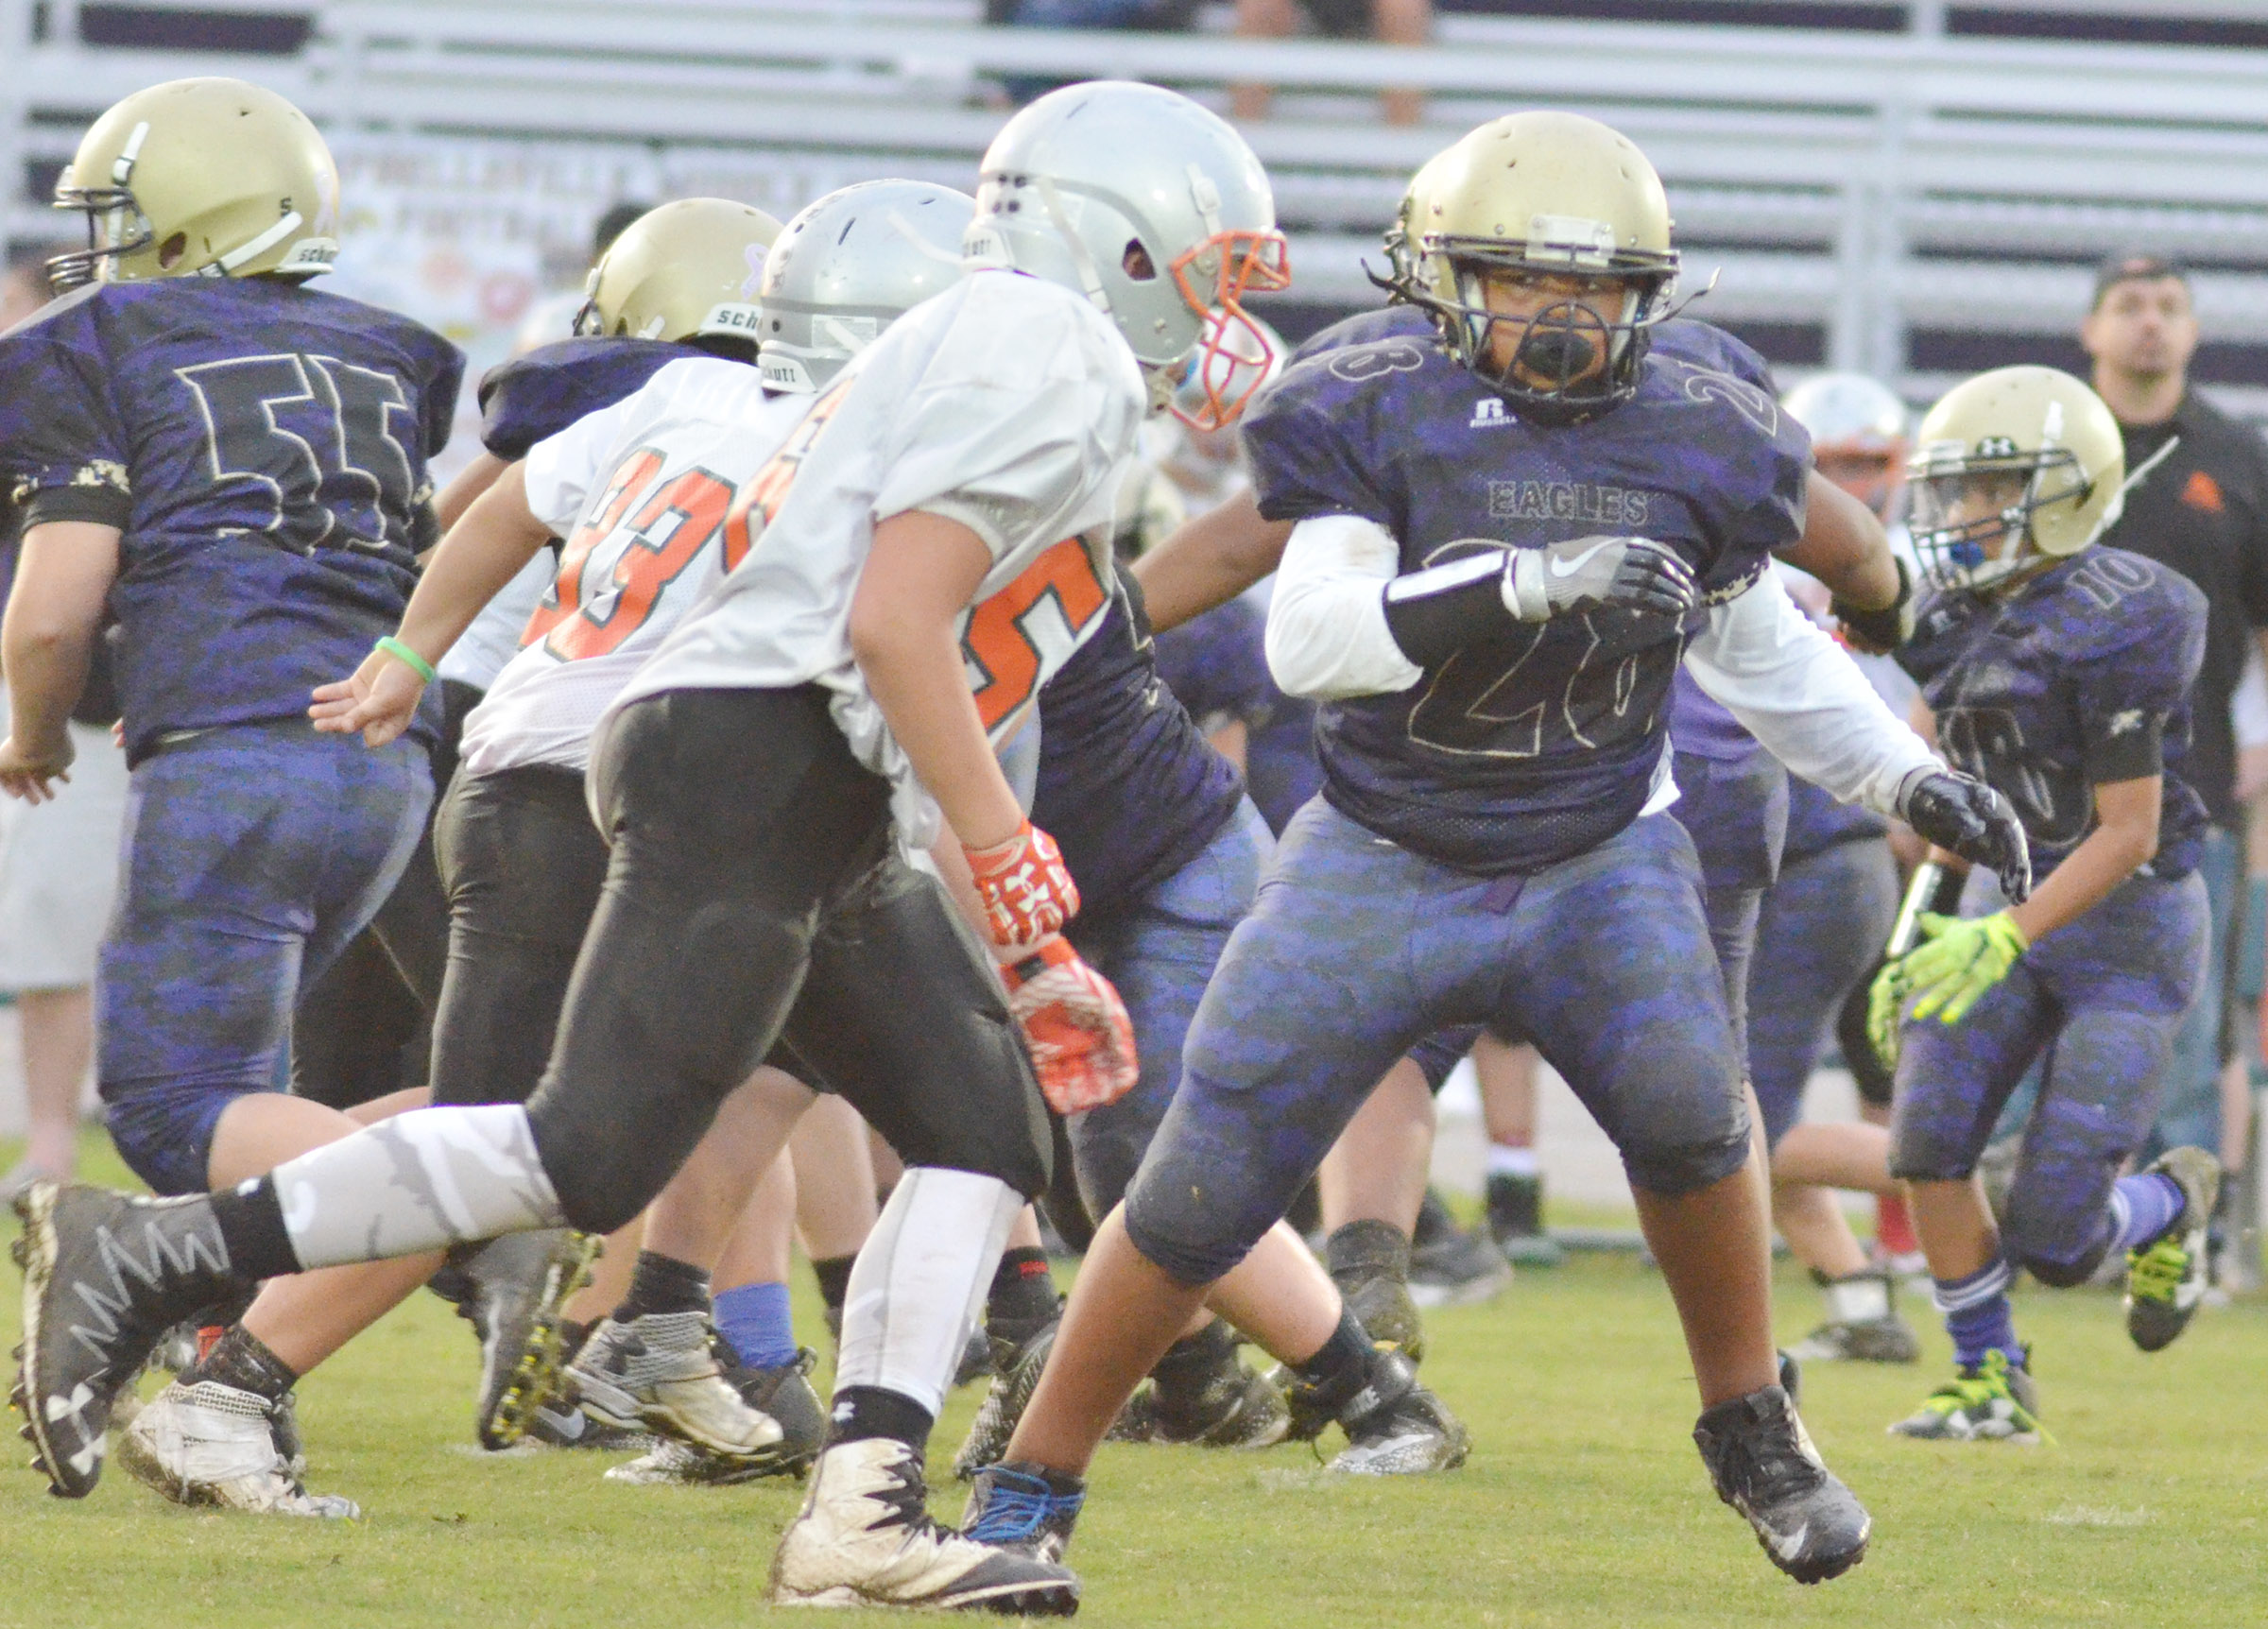 CMS seventh-grader Keondre Weathers tackles.